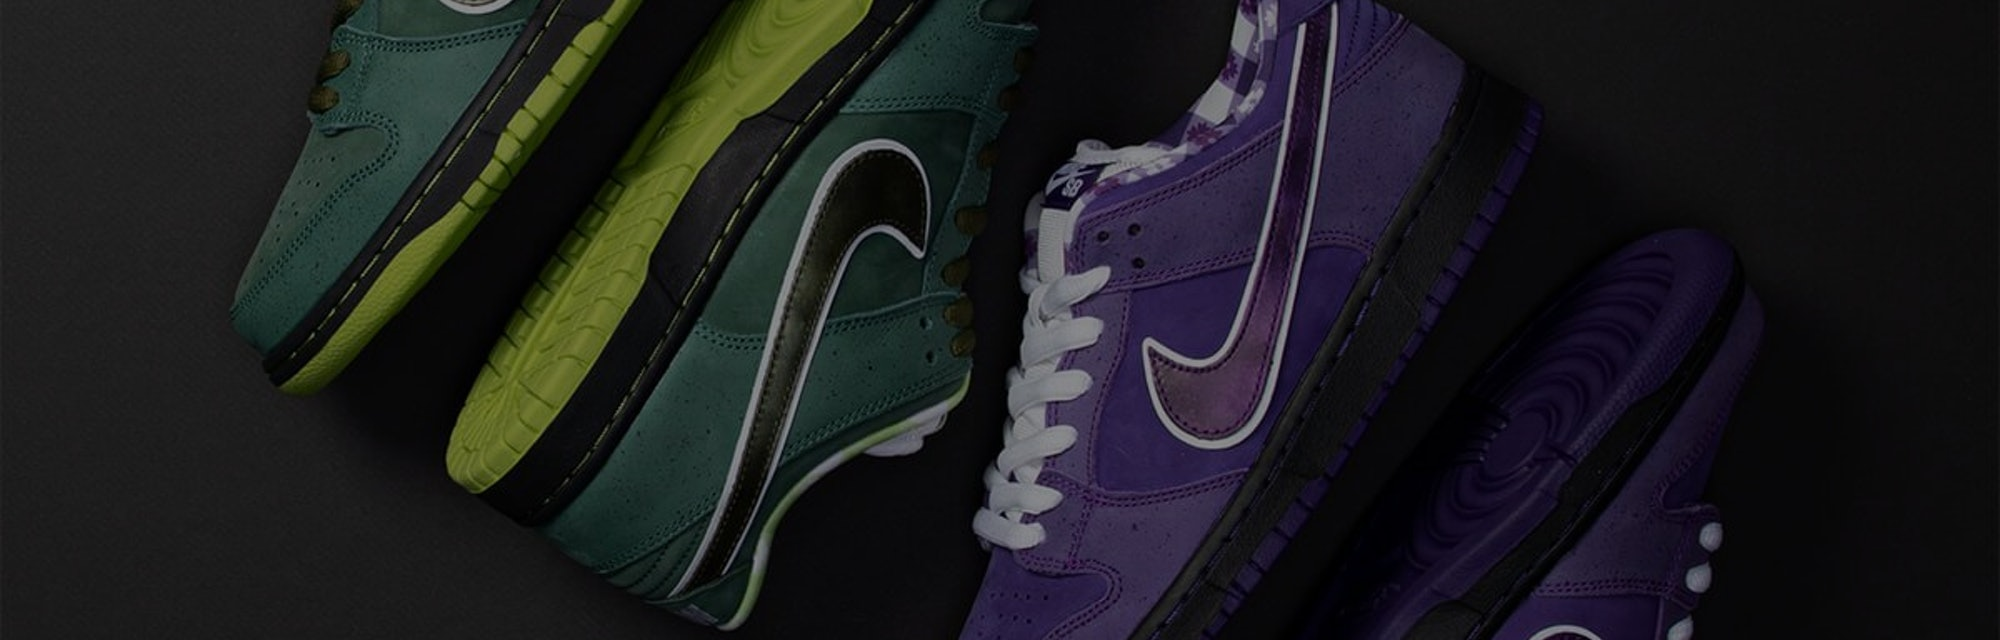 The green and purple Nike SB Lobster Dunk sneakers.